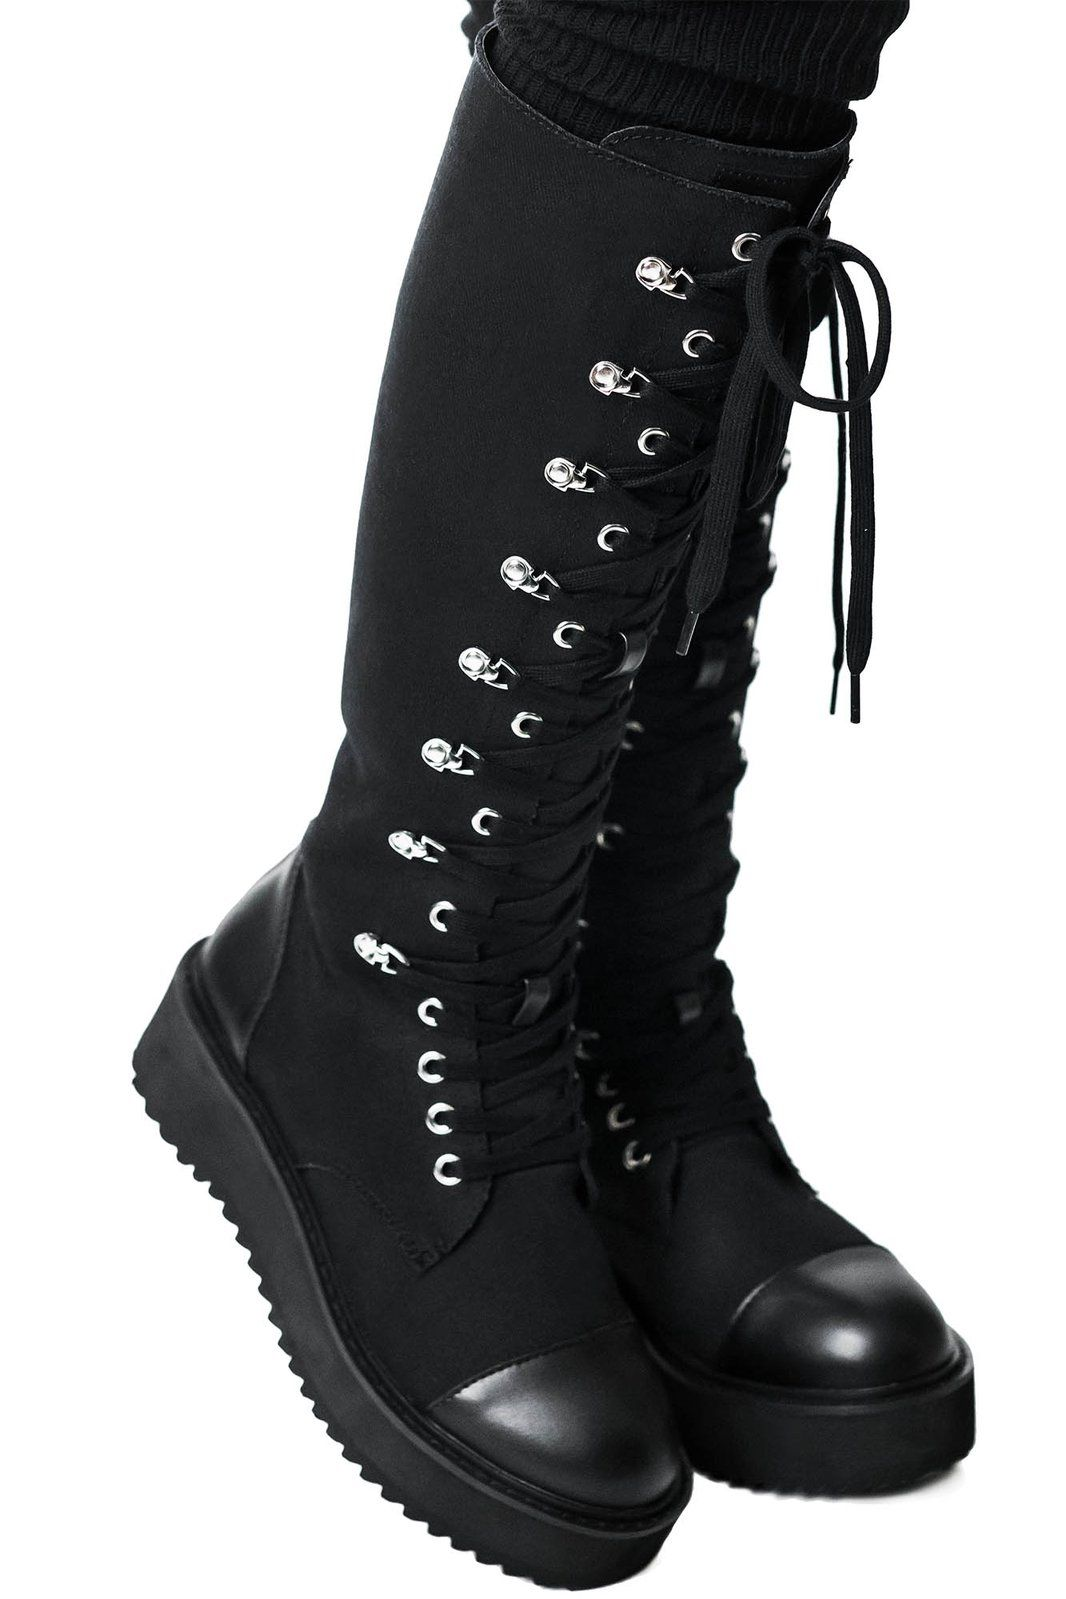 Details about  /Party Fashion Women Over the Knee Lace Up Thigh High Combat Low Heel Boots Shoes